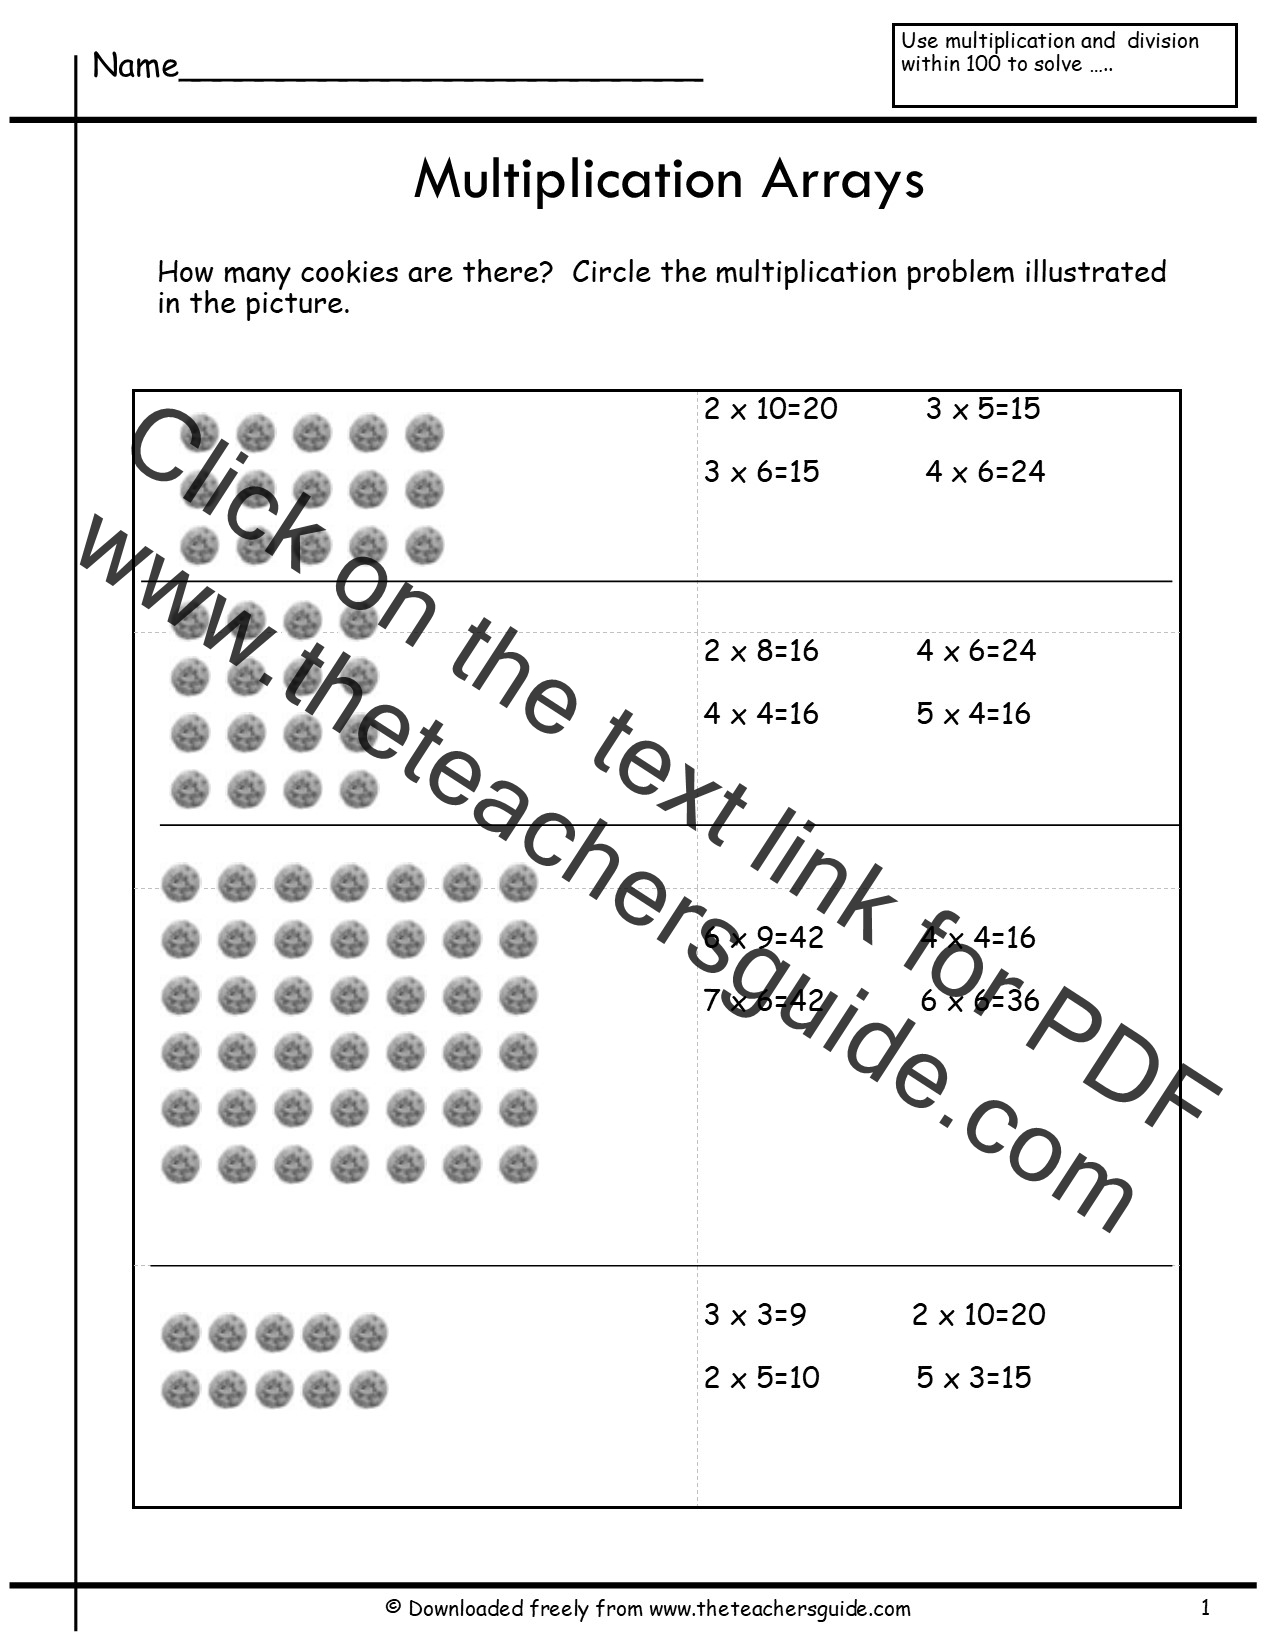 Worksheet What Is Multiplication In Math multiplication array worksheets from the teachers guide arrays worksheet